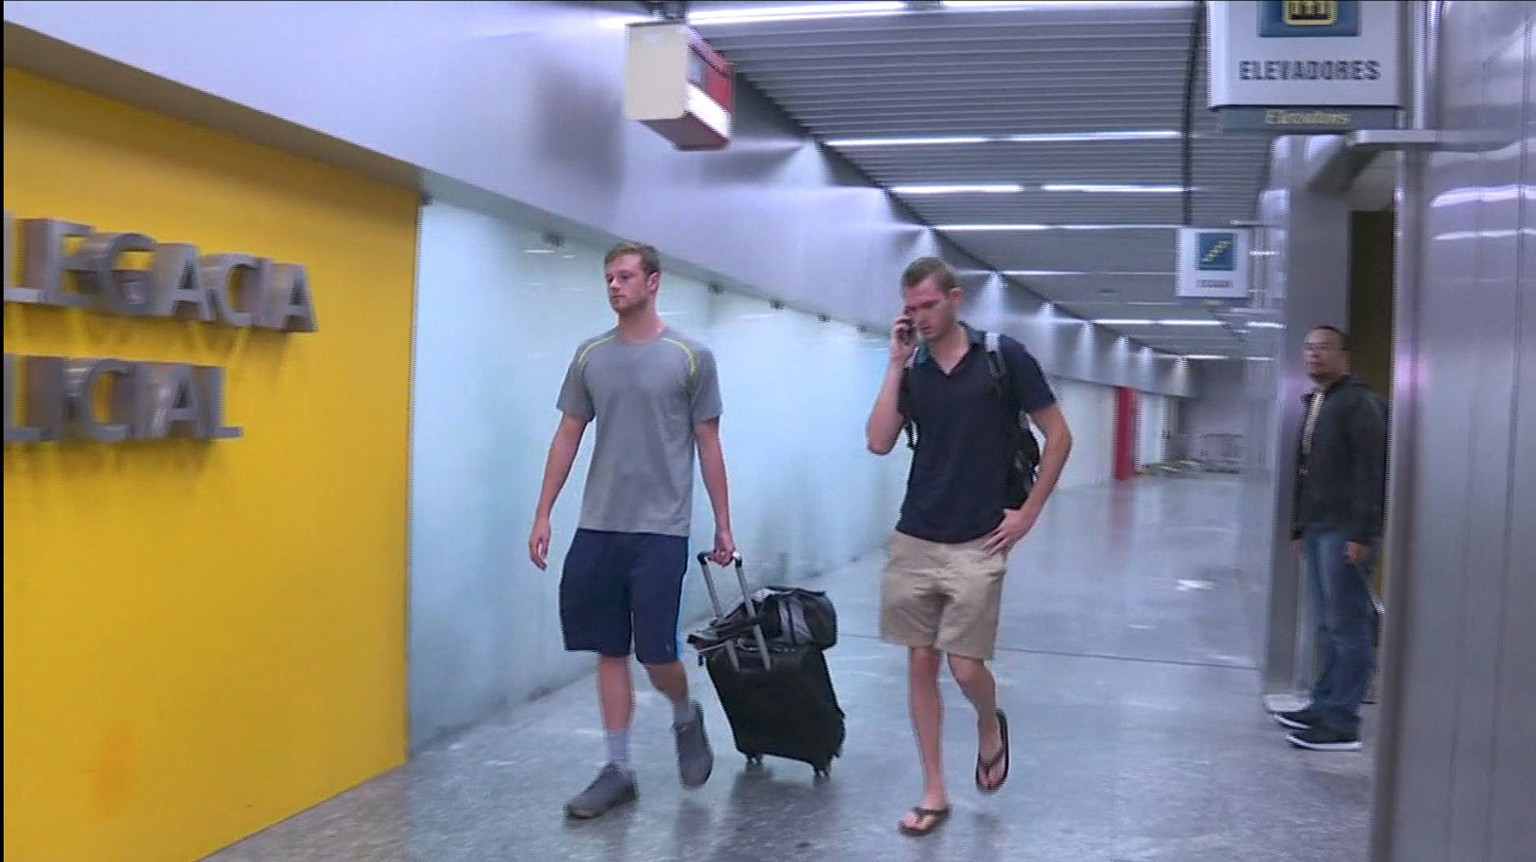 US swimmers Jack Conger (L) and Gunnar Bentz walk into a police office of Rio de Janeiro's international airport after they were stopped from boarding a flight to the United States following their participation in the Rio 2016 Olympic Games, August 17, 2016. REUTERS/Courtesy Globo TV/Handout TPX IMAGES OF THE DAY EDITORIAL USE ONLY